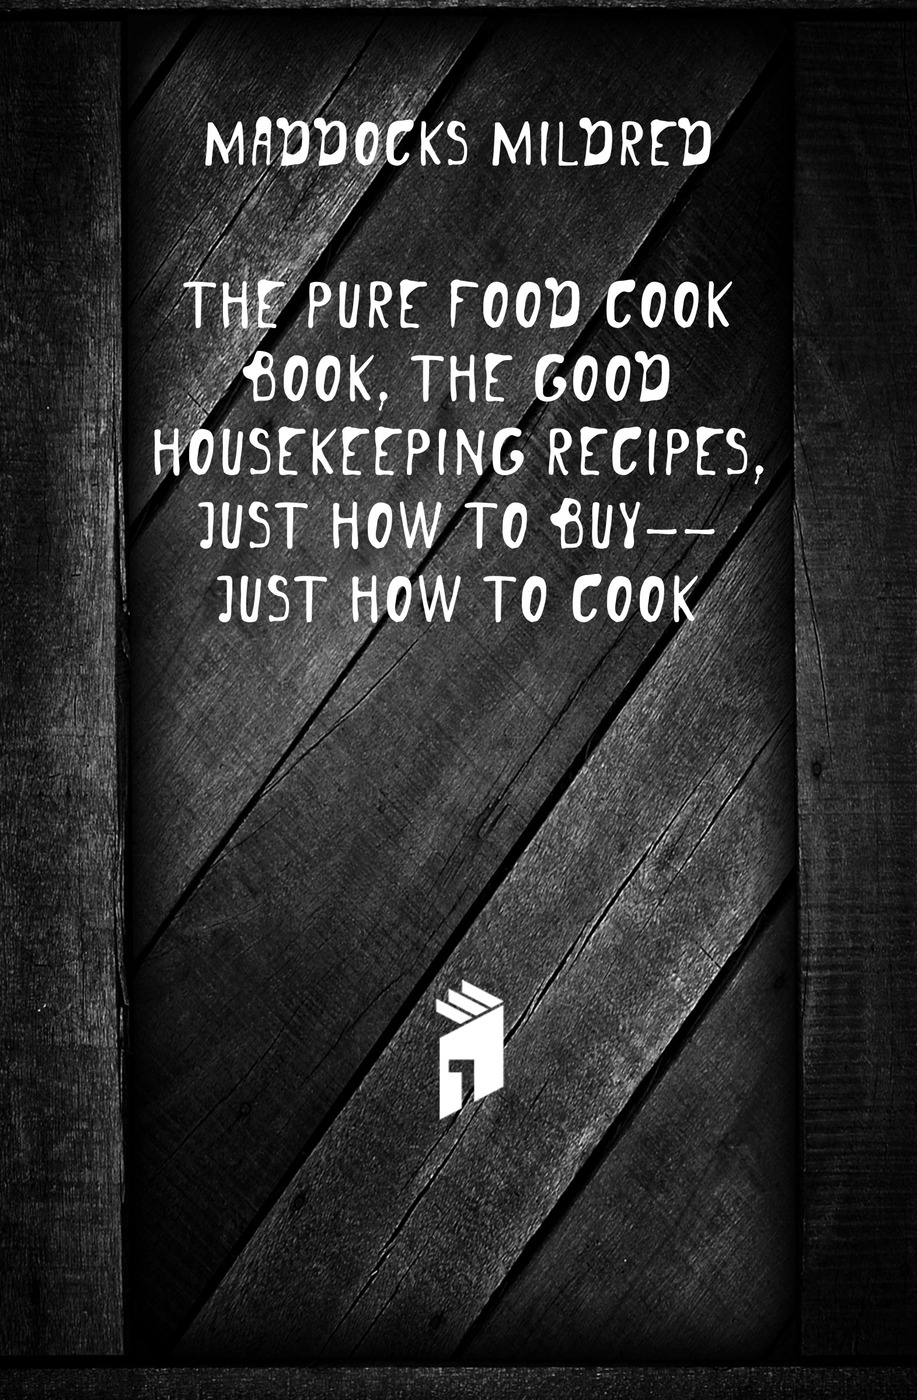 Maddocks Mildred The pure food cook book, the Good housekeeping recipes, just how to buy--just how to cook delia s how to cook book three